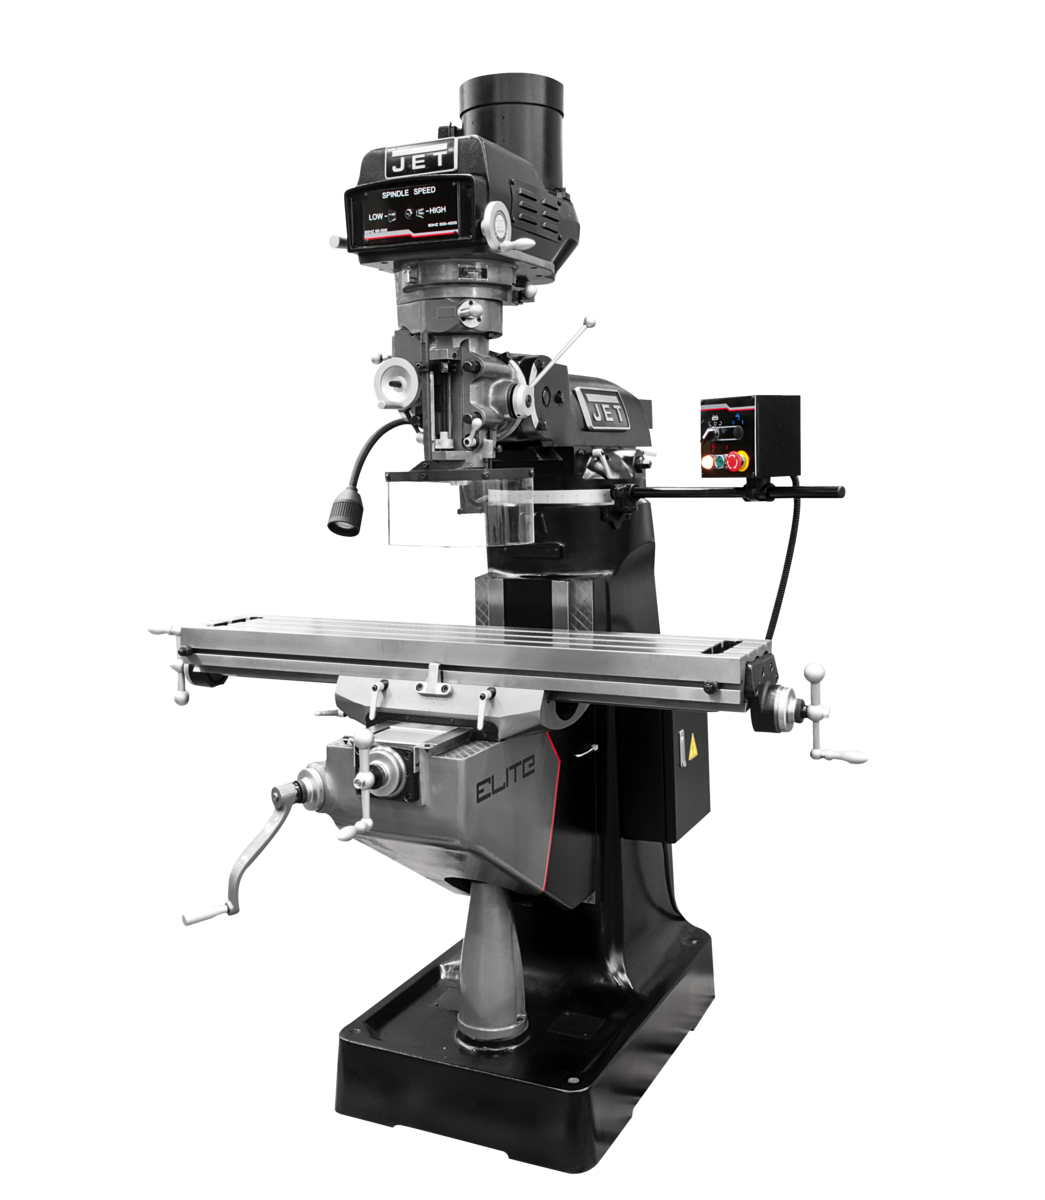 ETM-949 Mill with 3-Axis ACU-RITE 303 (Quill) DRO and X, Y, Z-Axis JET Powerfeeds